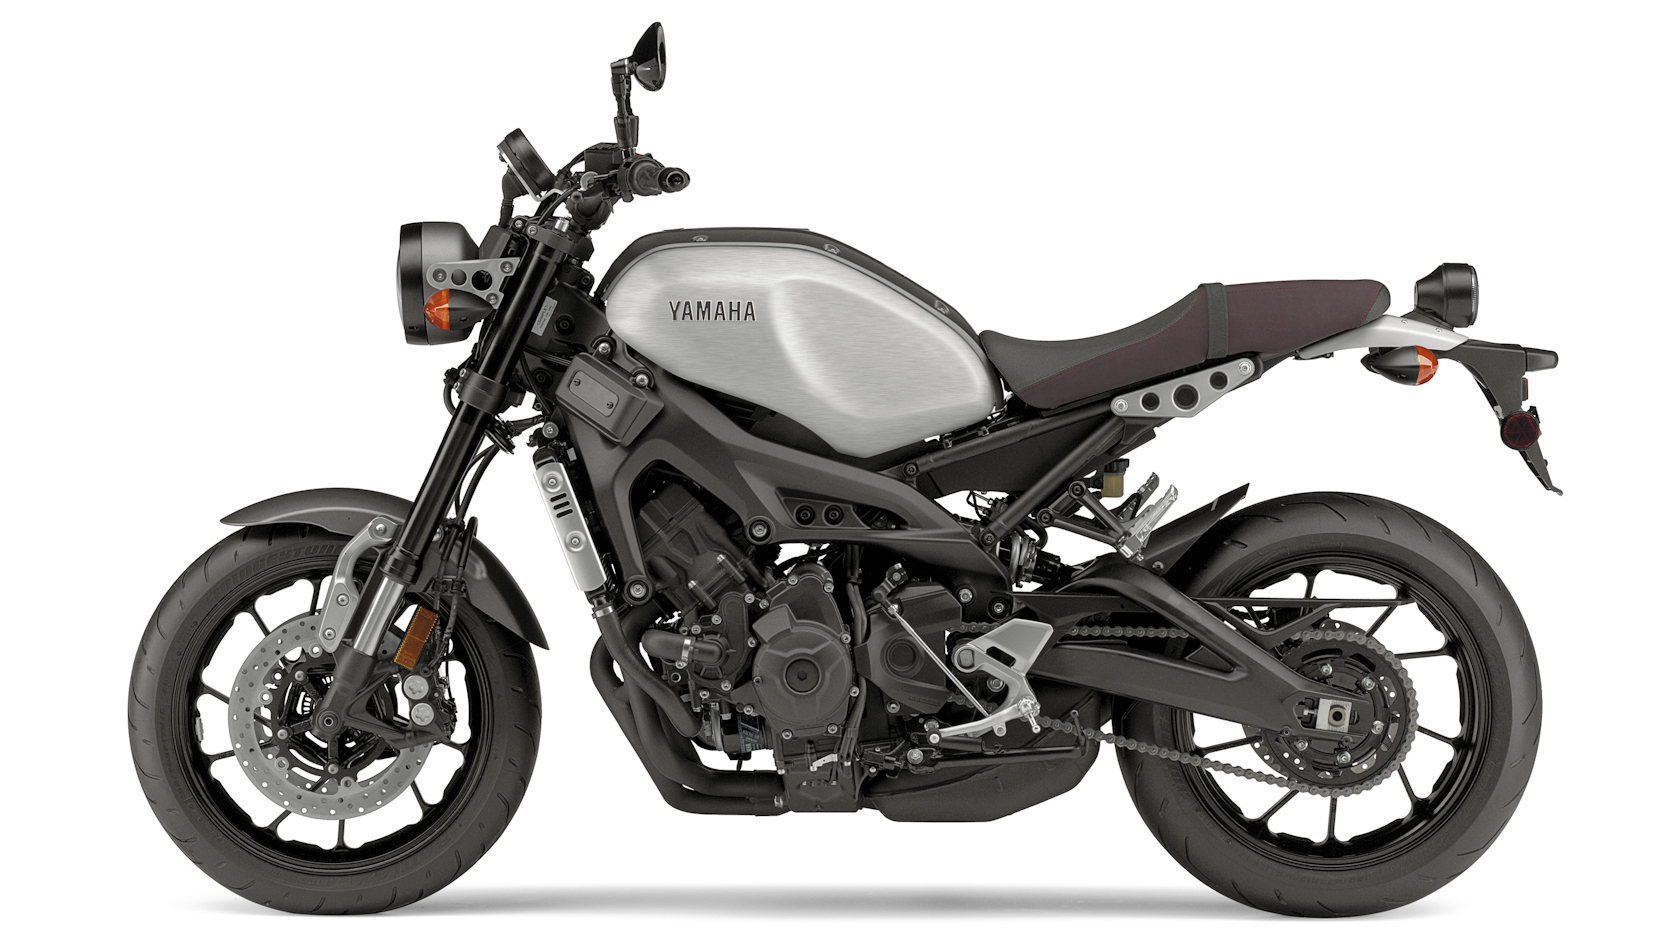 2016 2017 yamaha xsr900 review top speed for Yamaha xsr900 price